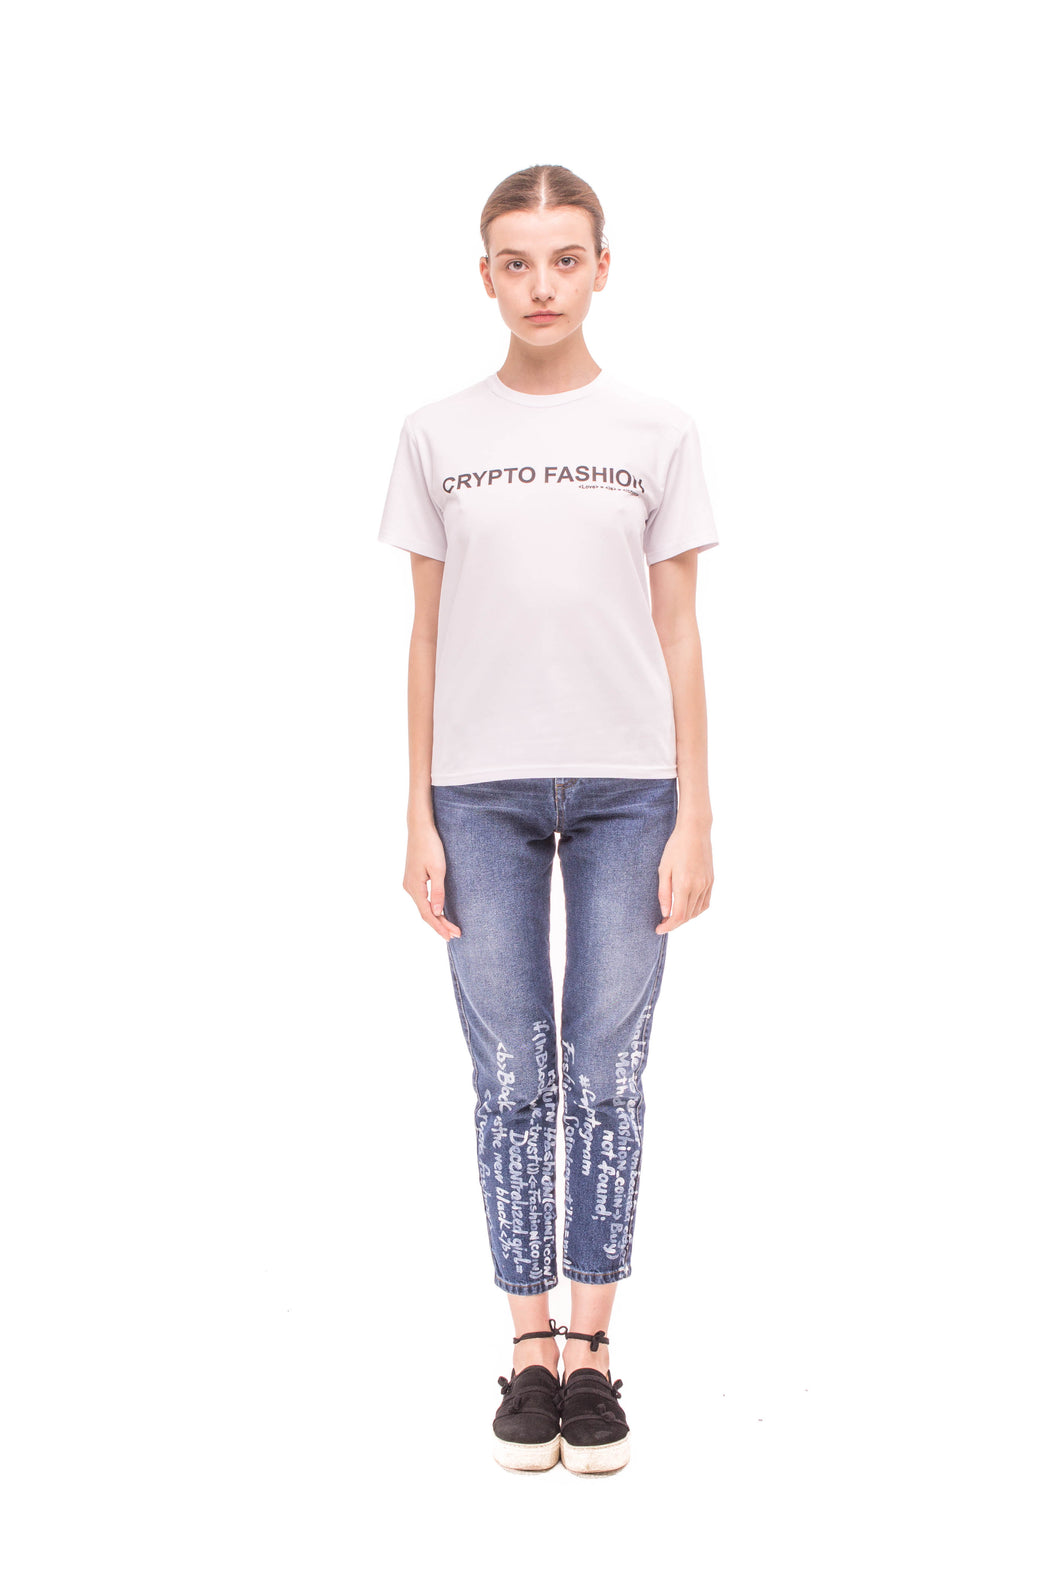 T-shirt CRYPTO FASHION SS_JR02 - Anna K